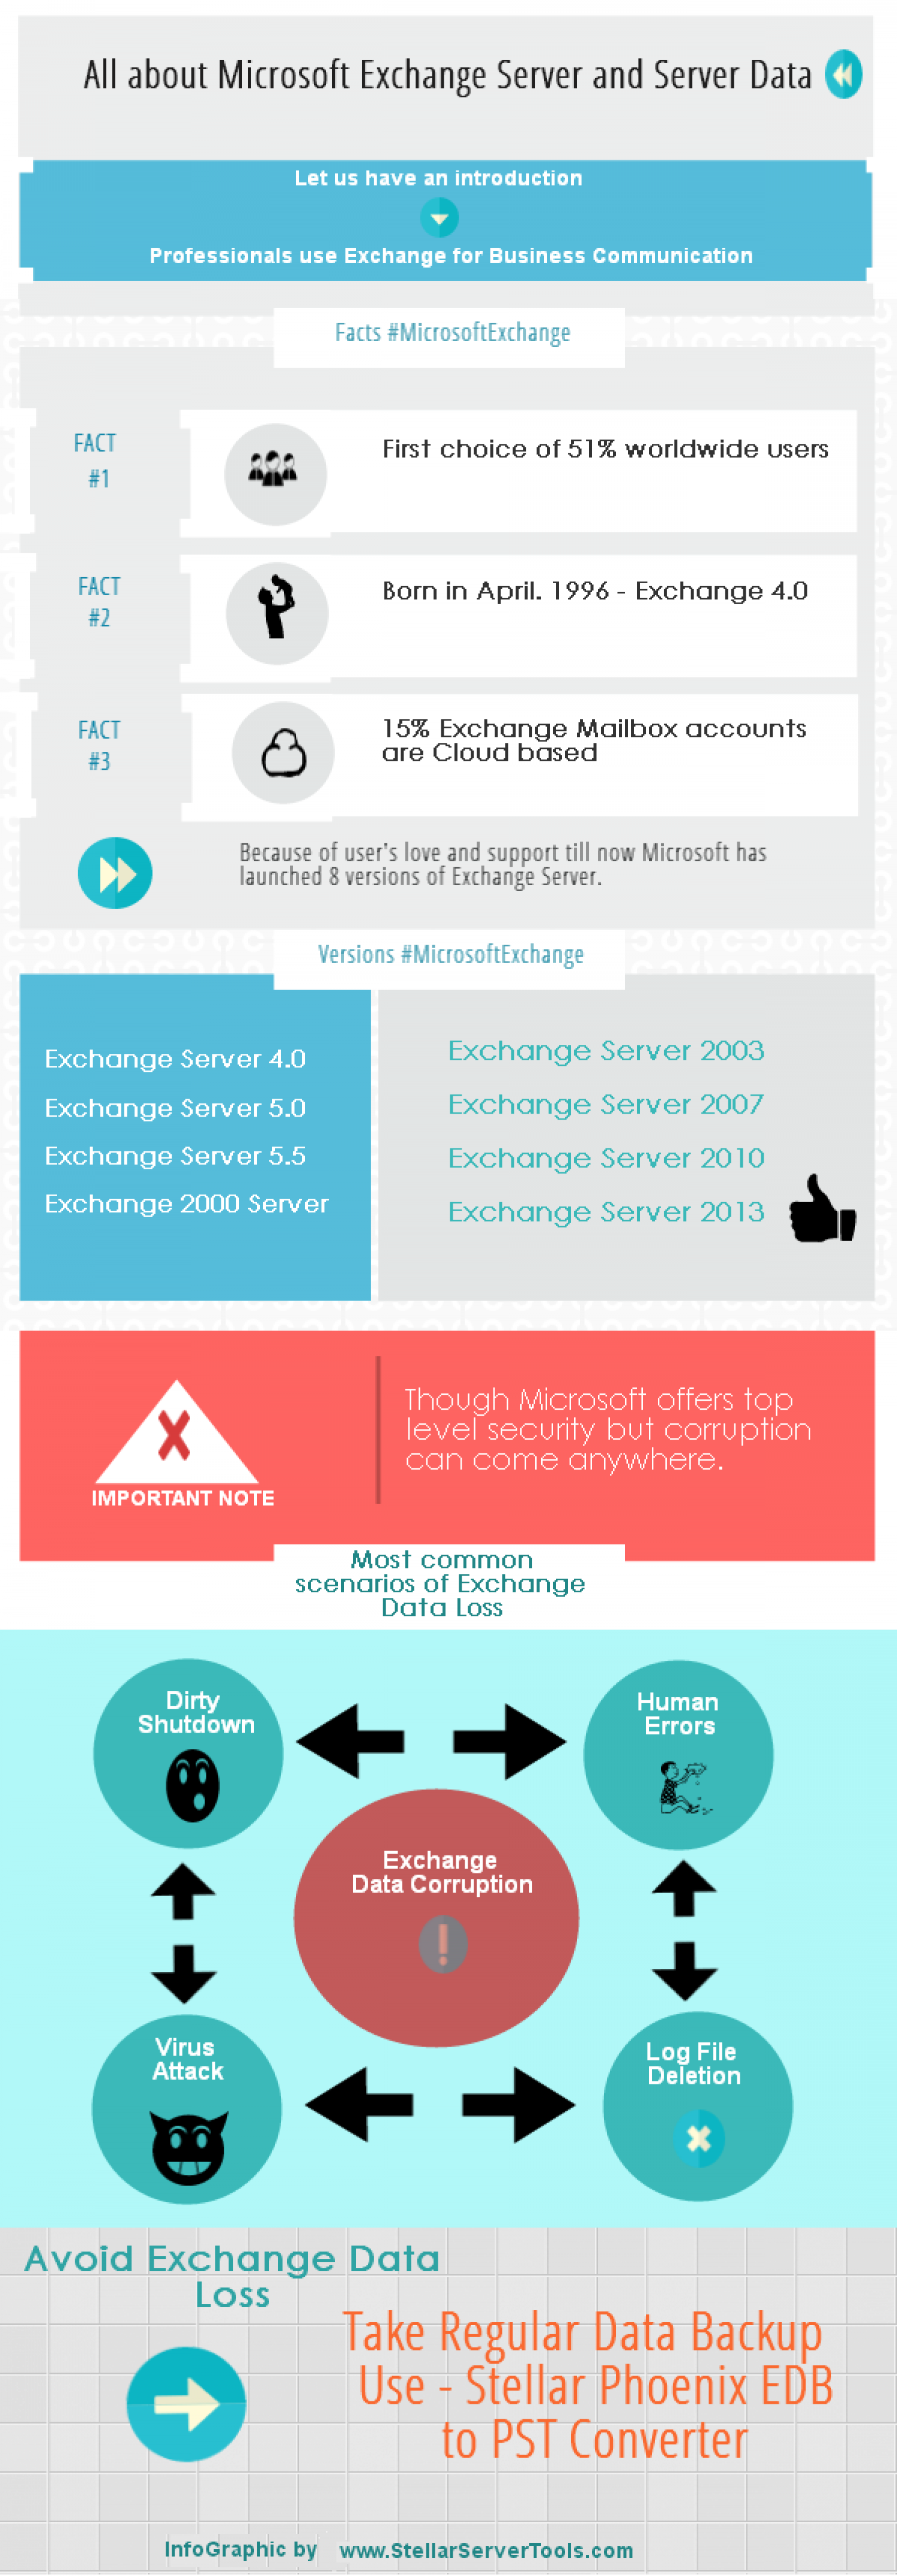 All about Microsoft Exchange Server History and its Versions ...